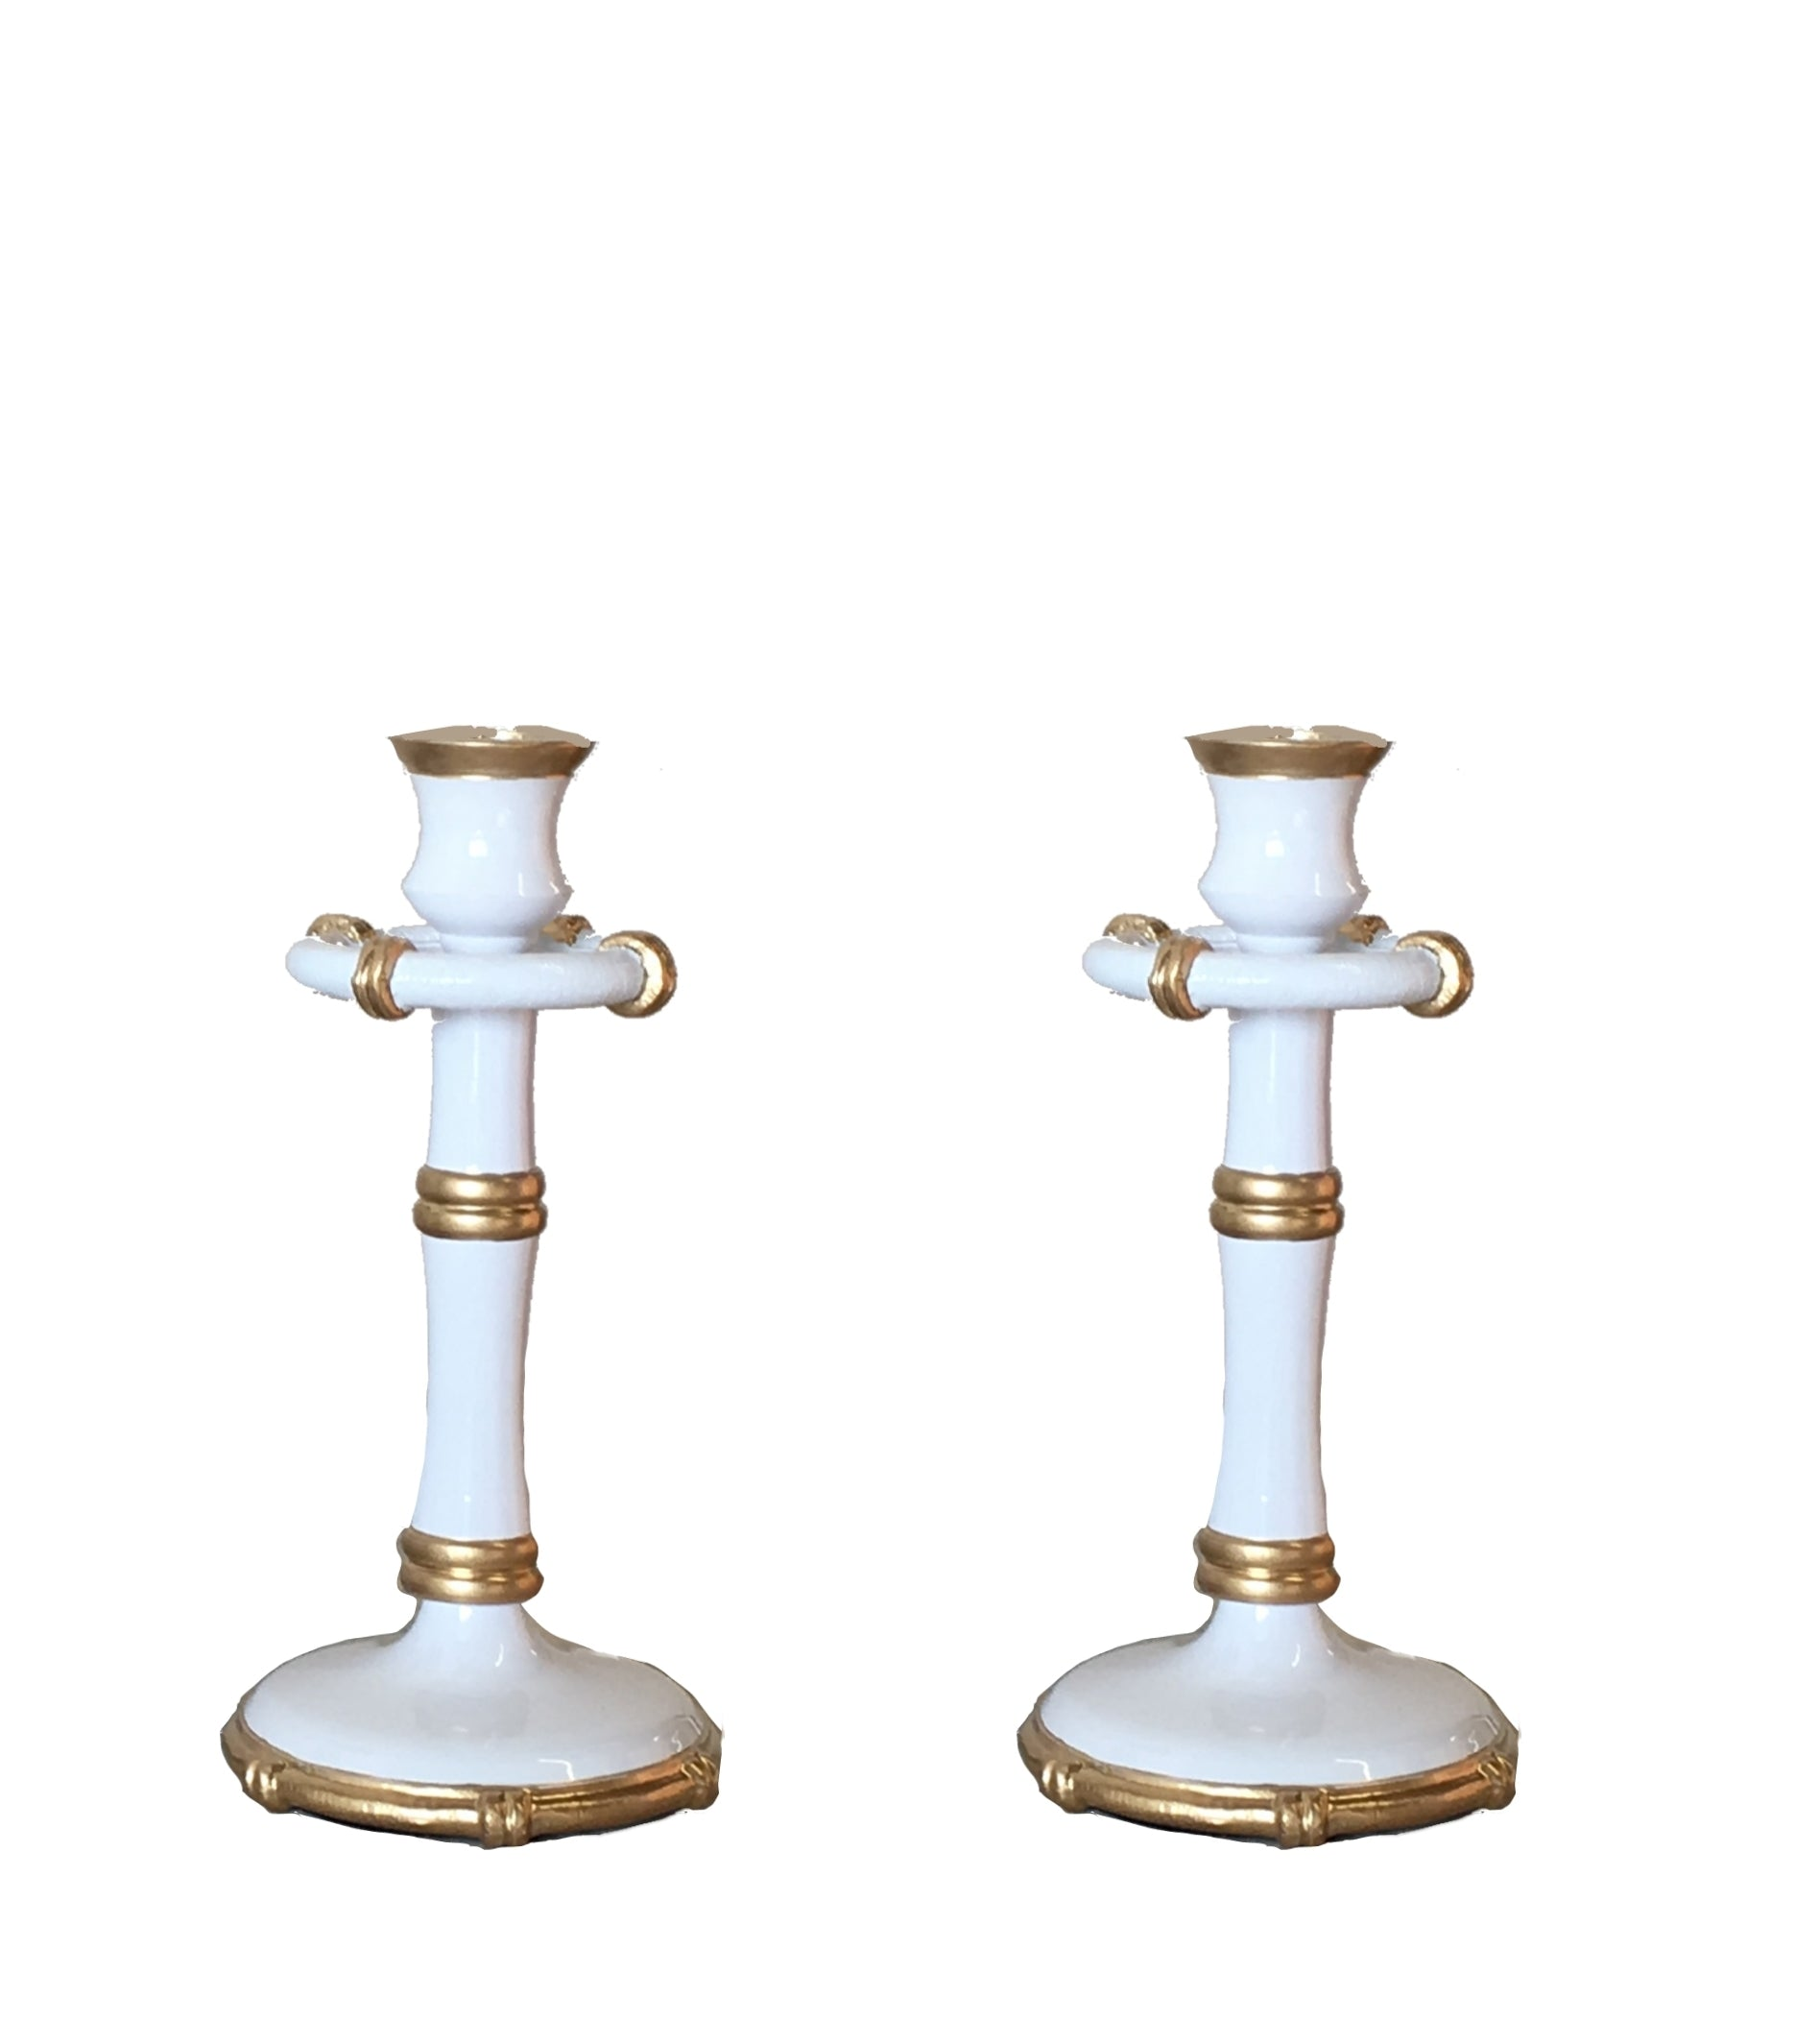 Pair of Medium Bamboo Candlesticks in White